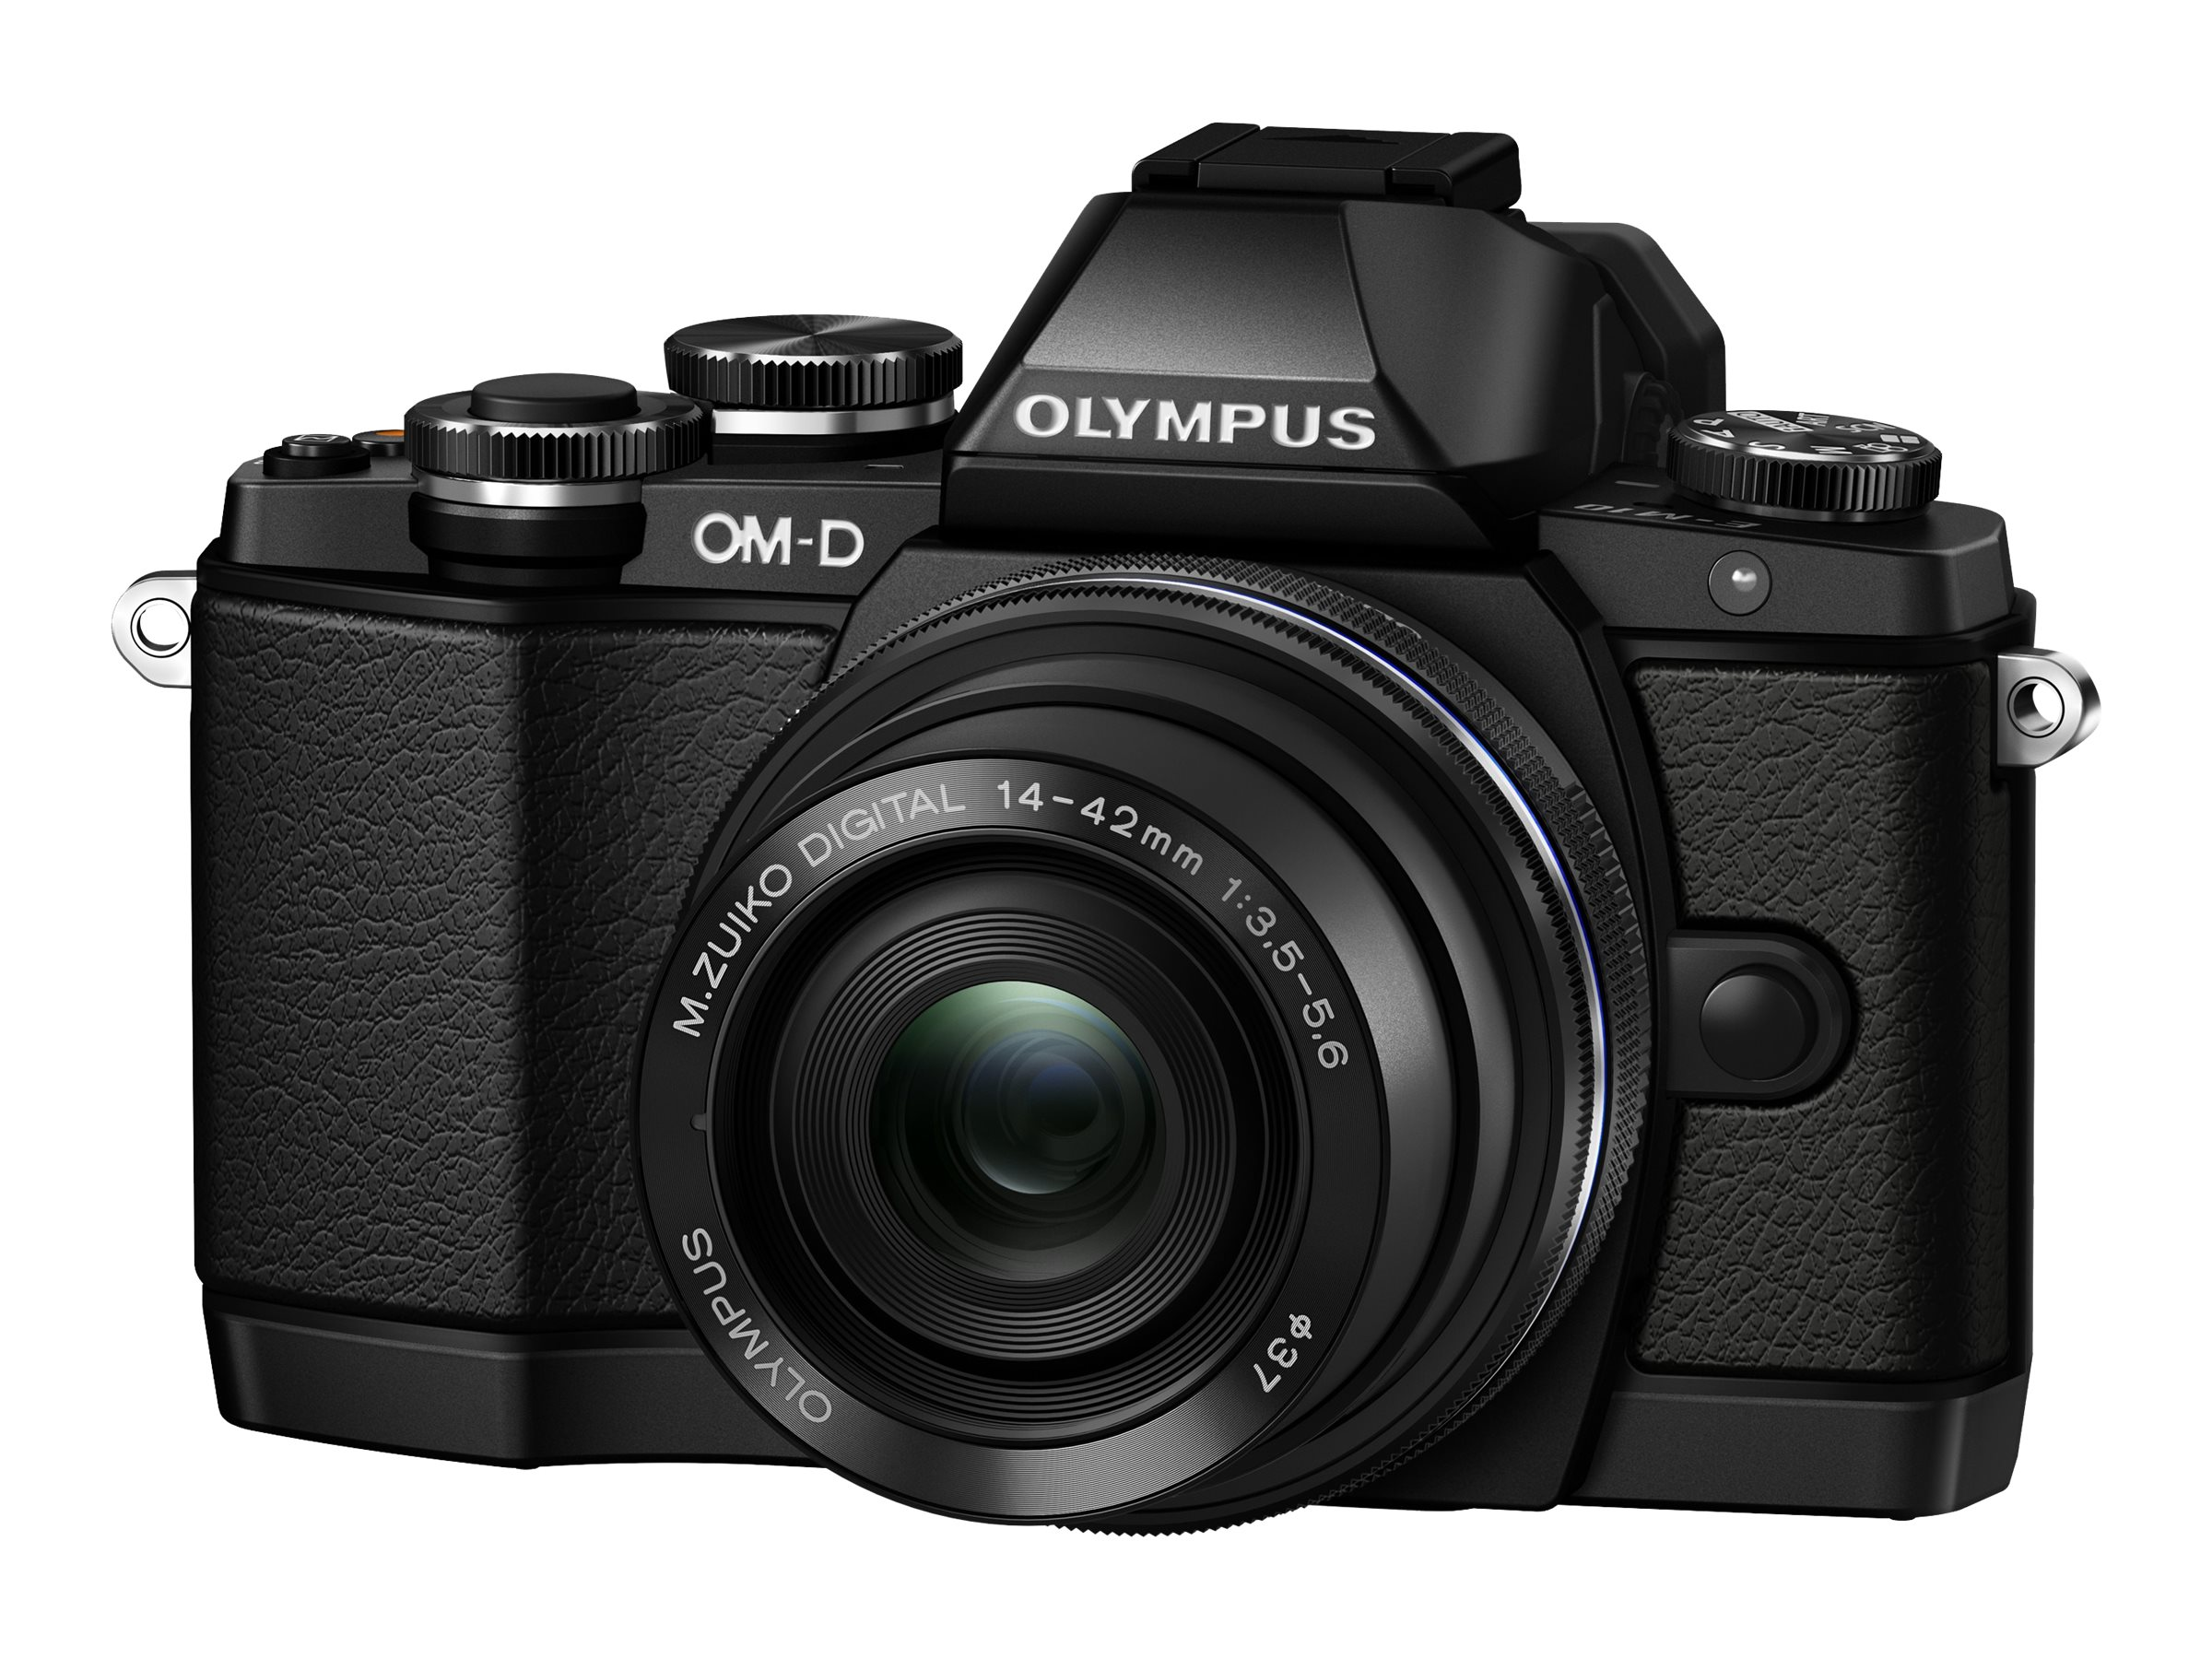 Olympus Mirrorless Micro Four Thirds Digital Camera, Black with 14-42mm Lens, V207021BU000, 16793279, Cameras - Digital - Point & Shoot